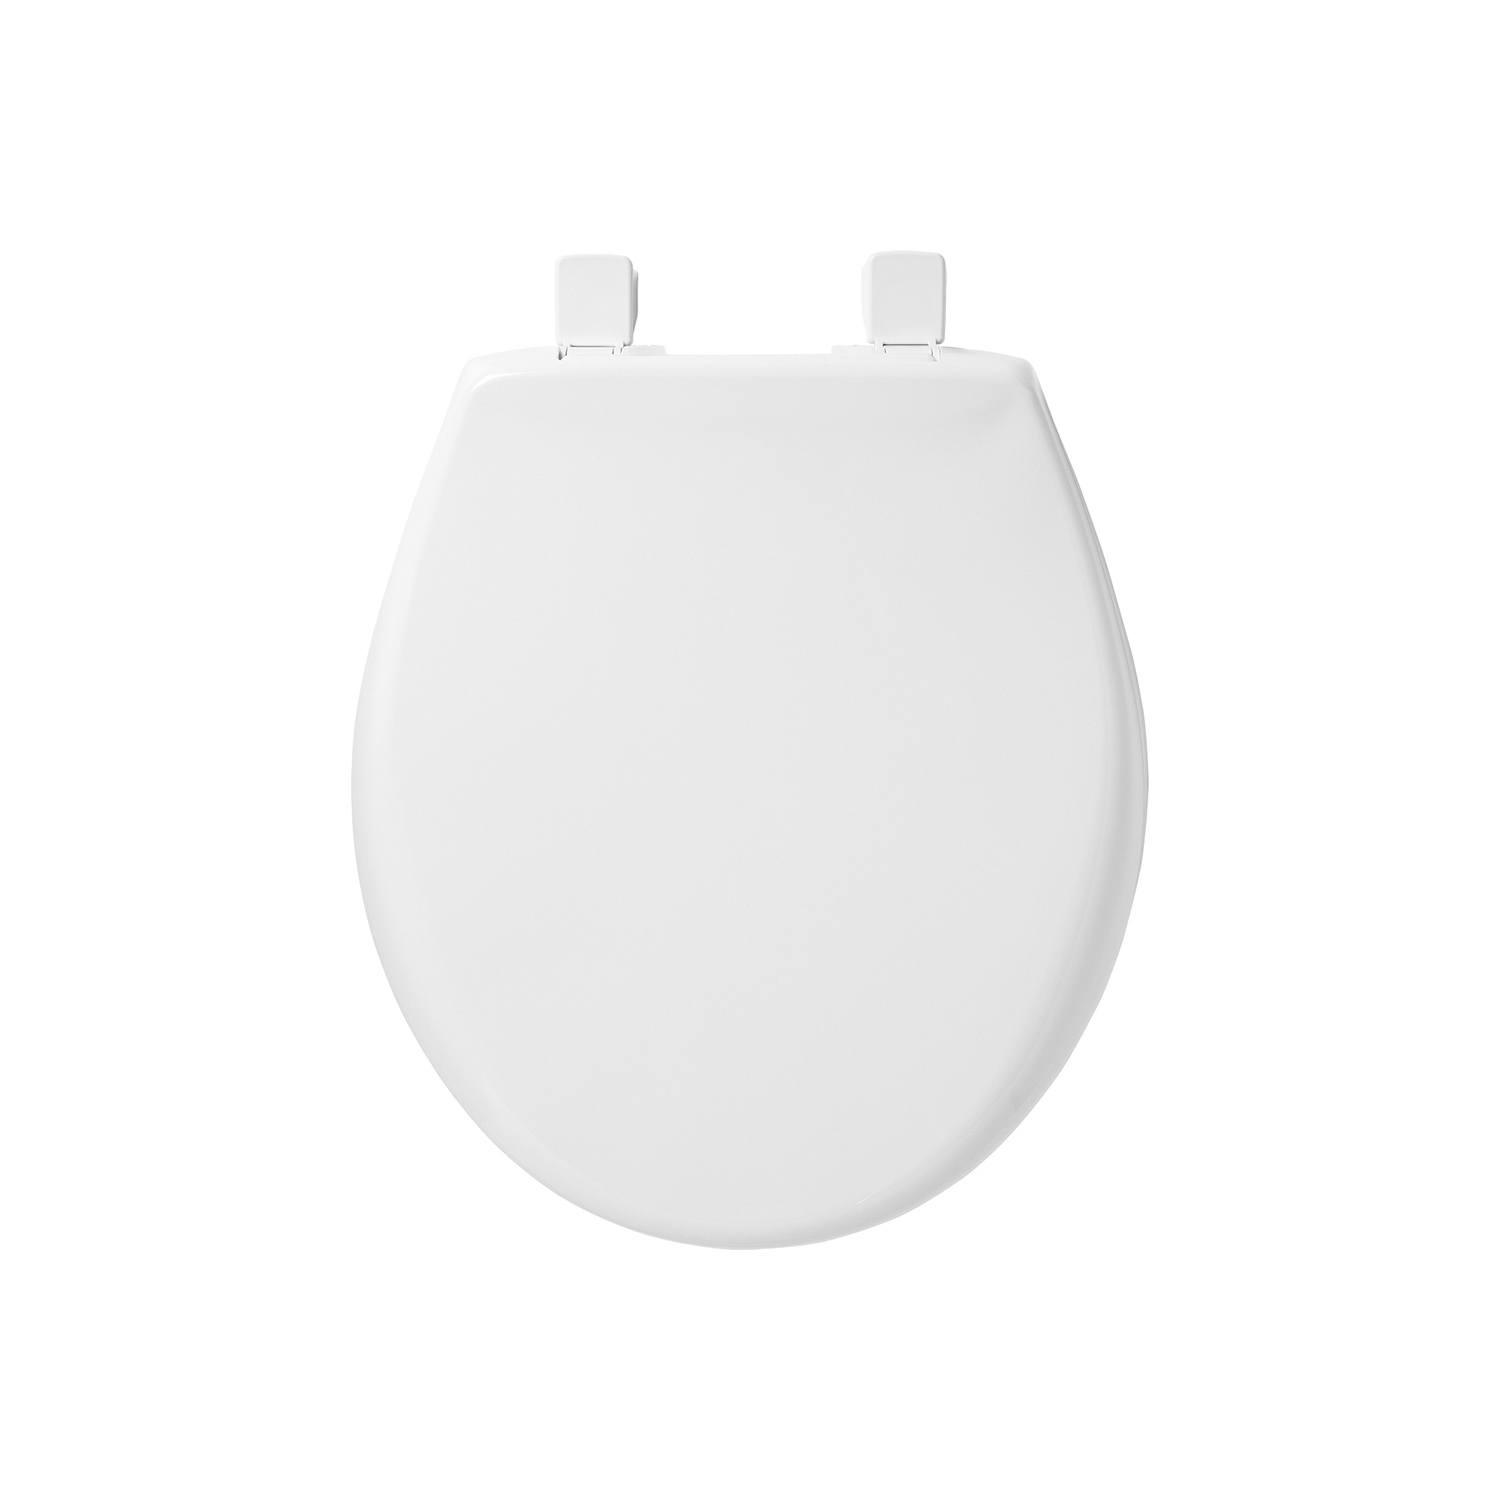 Bemis® AFFINITY™ 200E3 000 Toilet Seat With Cover, Round Bowl, Closed Front, Plastic, Easy Clean/Change® Adjustable Hinge, White, Domestic